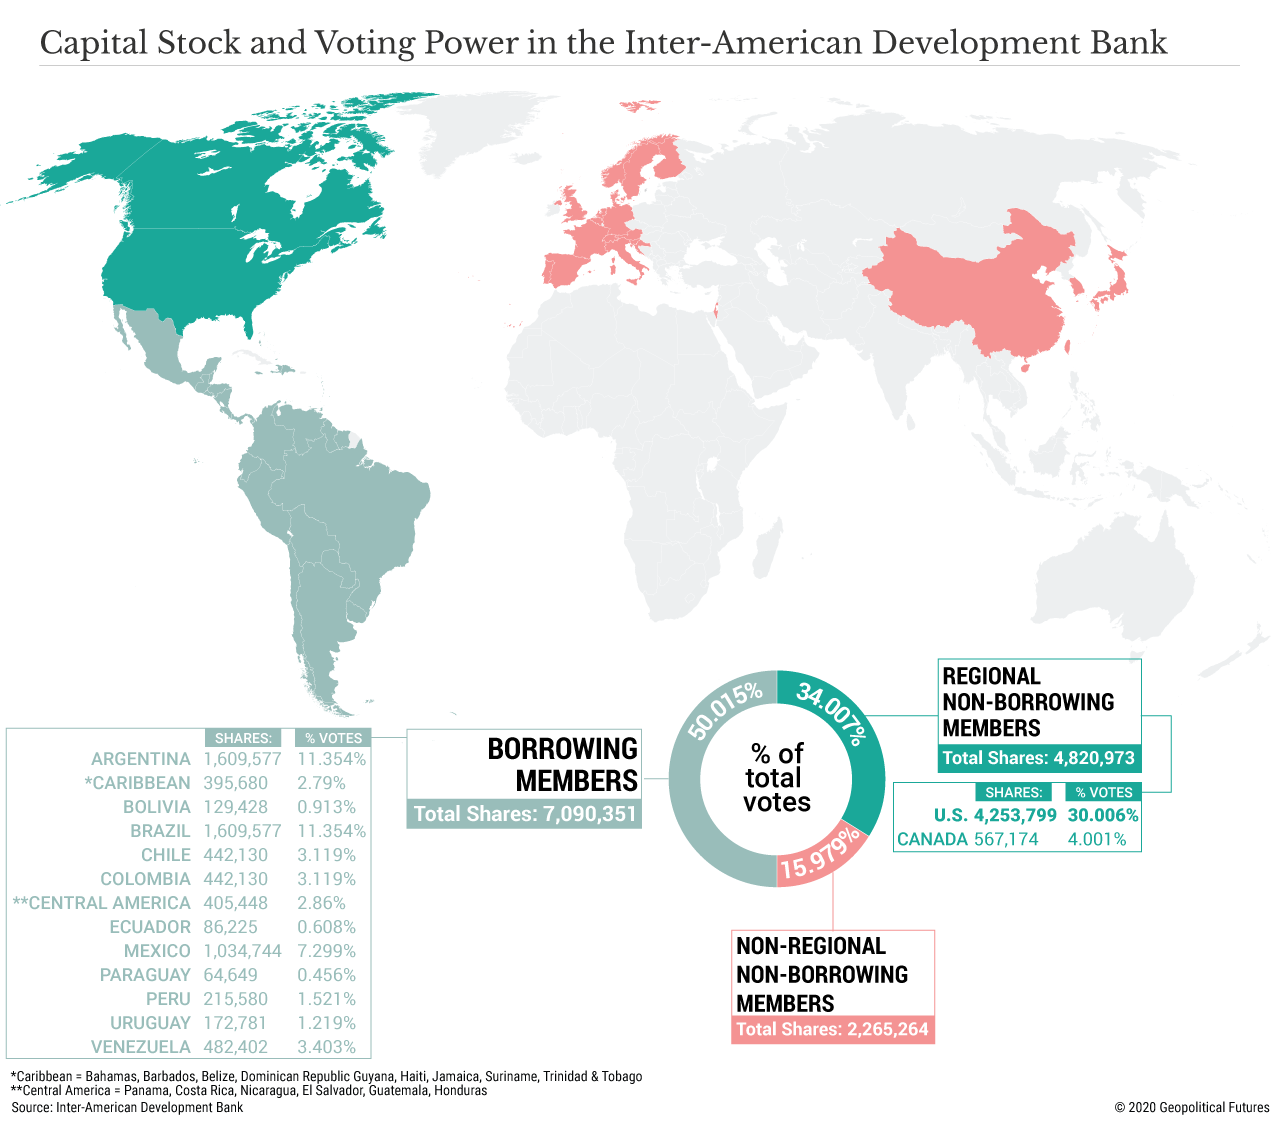 Capital Stock and Voting Power in the Inter-American Development Bank